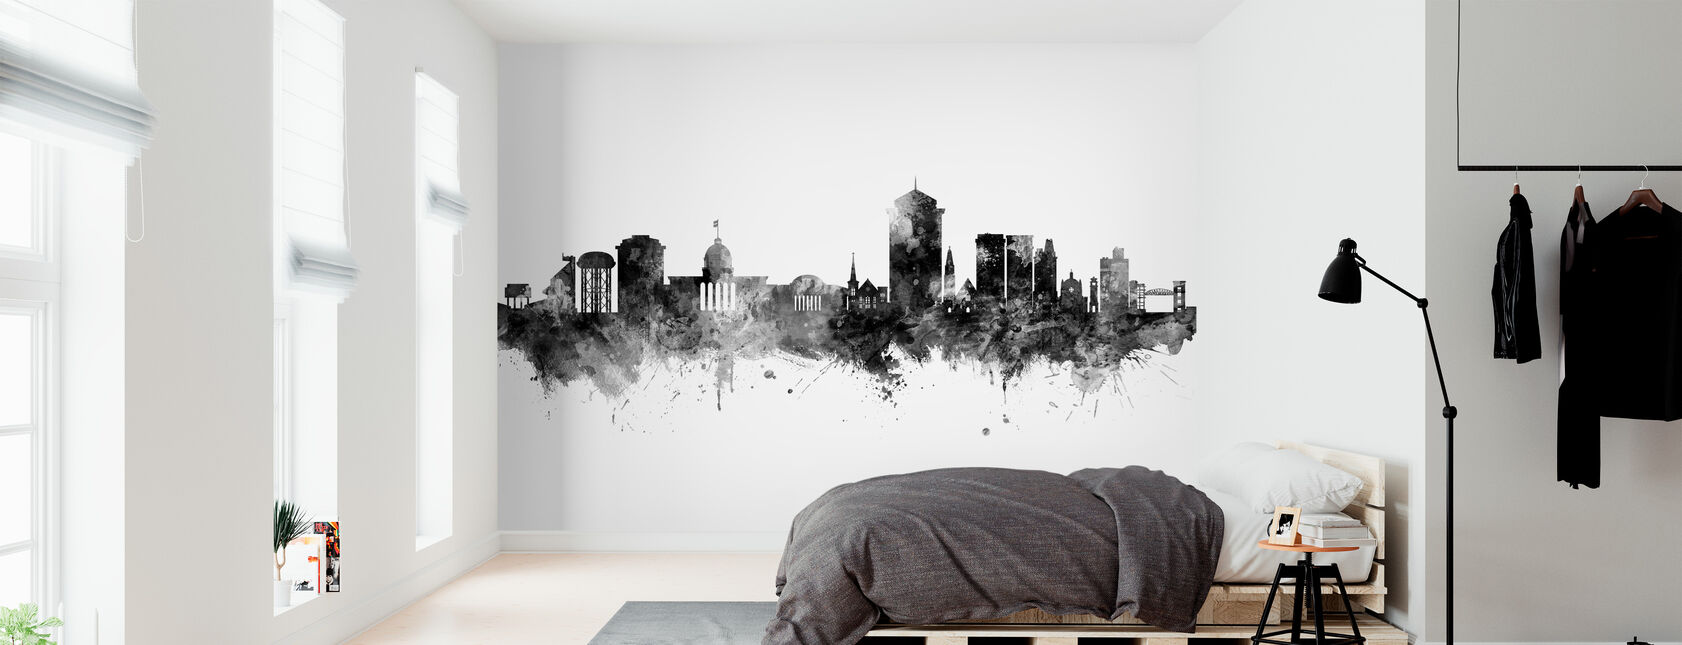 Montgomery Alabama Skyline - Wallpaper - Bedroom